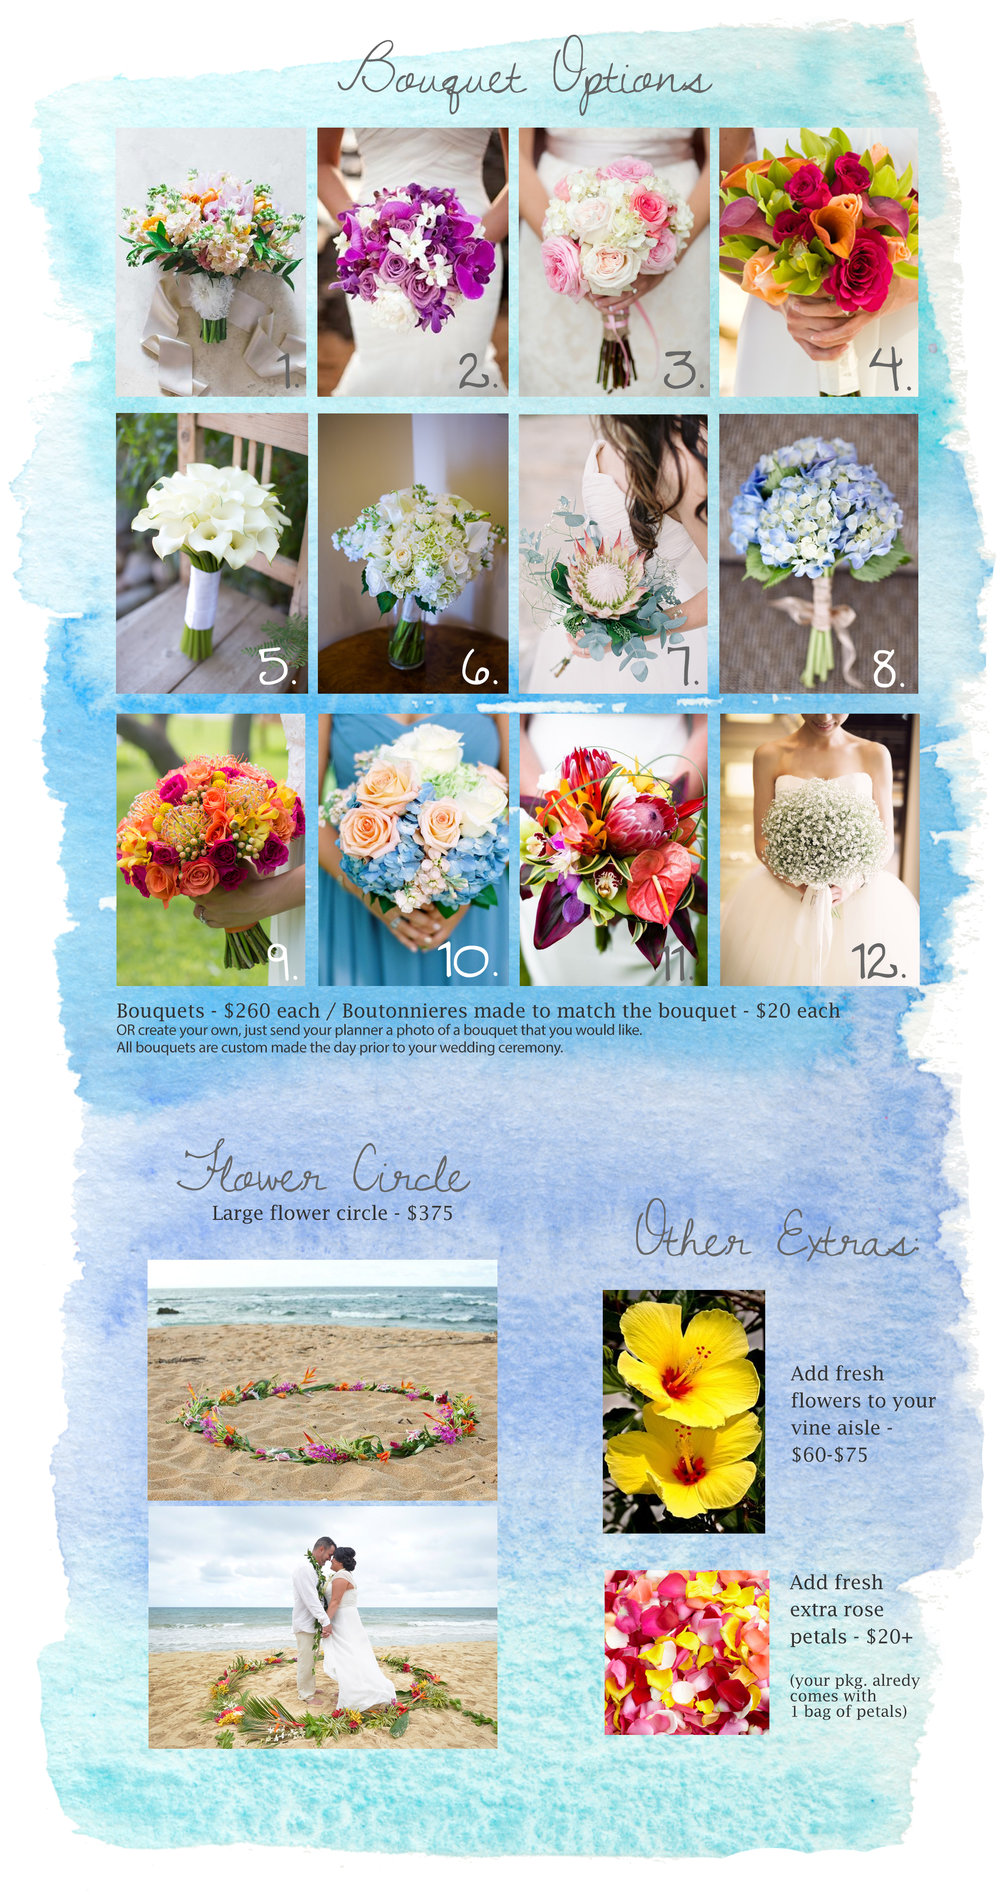 If you would like to add on a bouquet please let your planner know which # bouquet you would like and how many.  If you would like a custom bouquet please send a photo of the bouquet you would like.  Our florists will try to match styles of photos above but florals may change slightly depending what flowers are in season. Boutonnieres can be made to match all bouquets.  Fresh flowers added to your vine aisle are generally yellow hibiscus flowers picked fresh that morning.  If hibiscus flowers are unavailable, plumeria or another flower may be substituted.